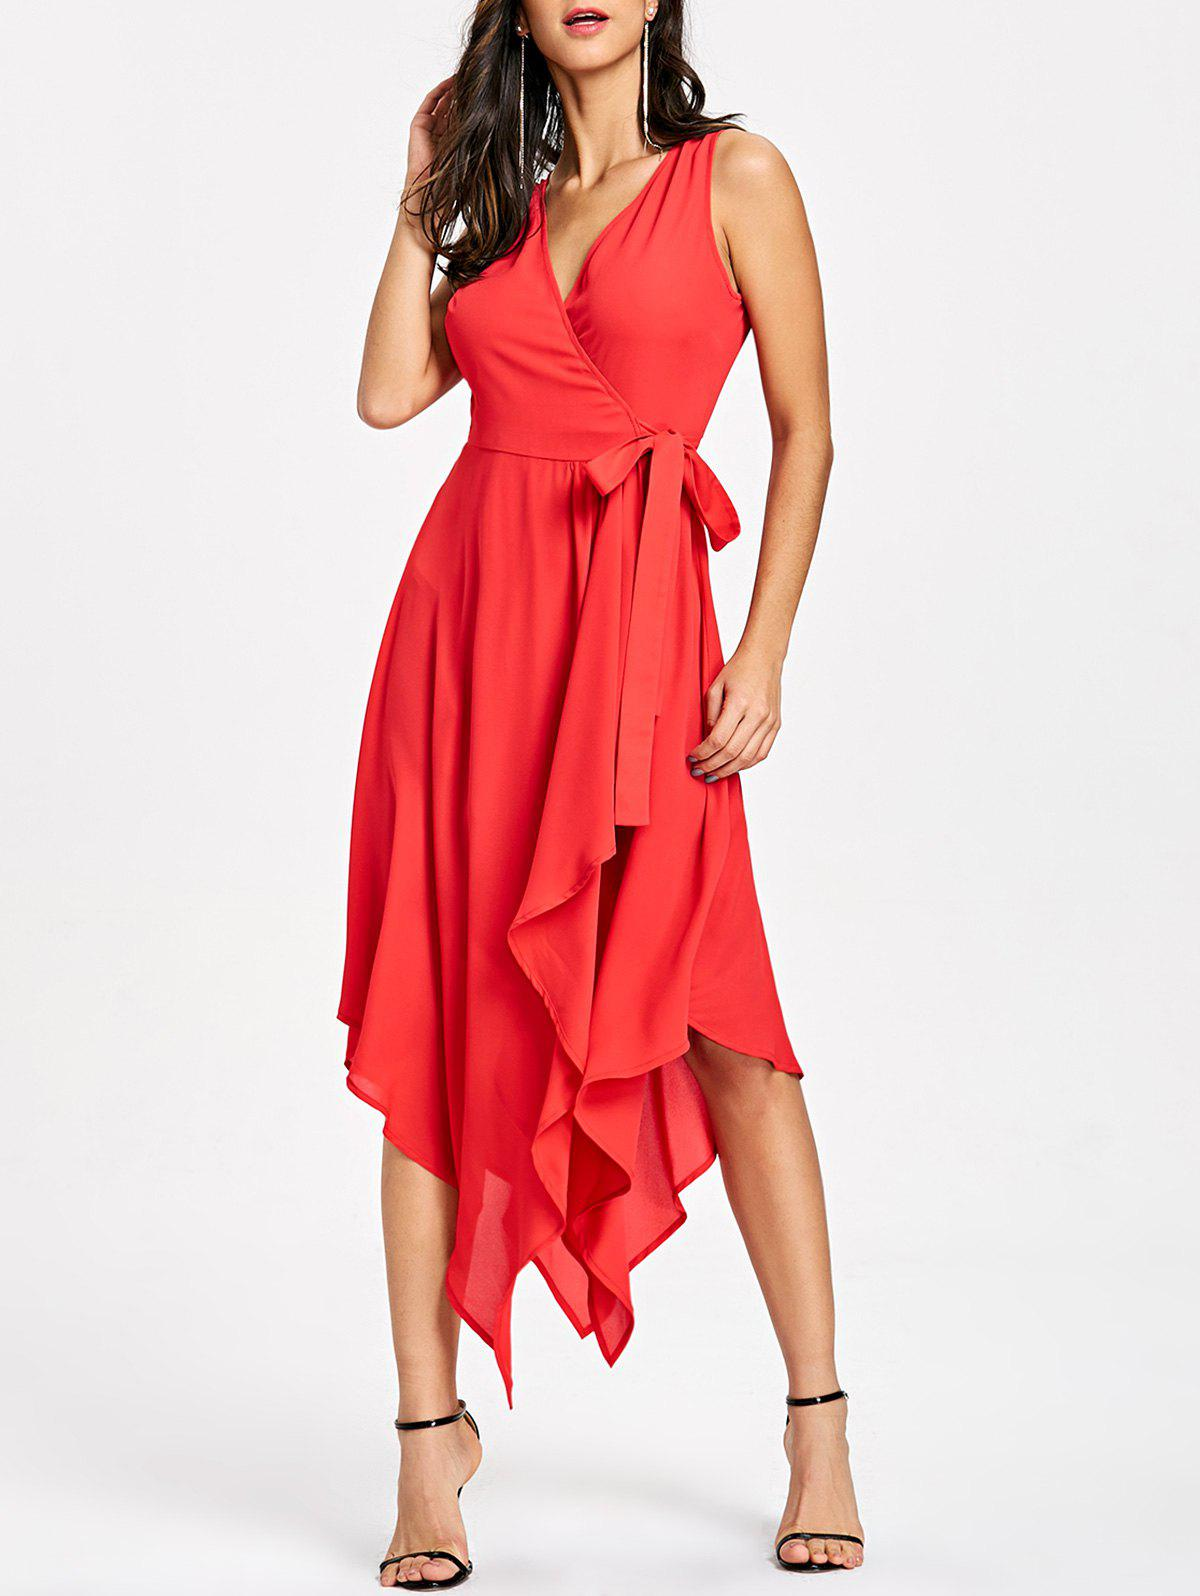 Sleeveless Flowy Handkerchief Hem Dress -